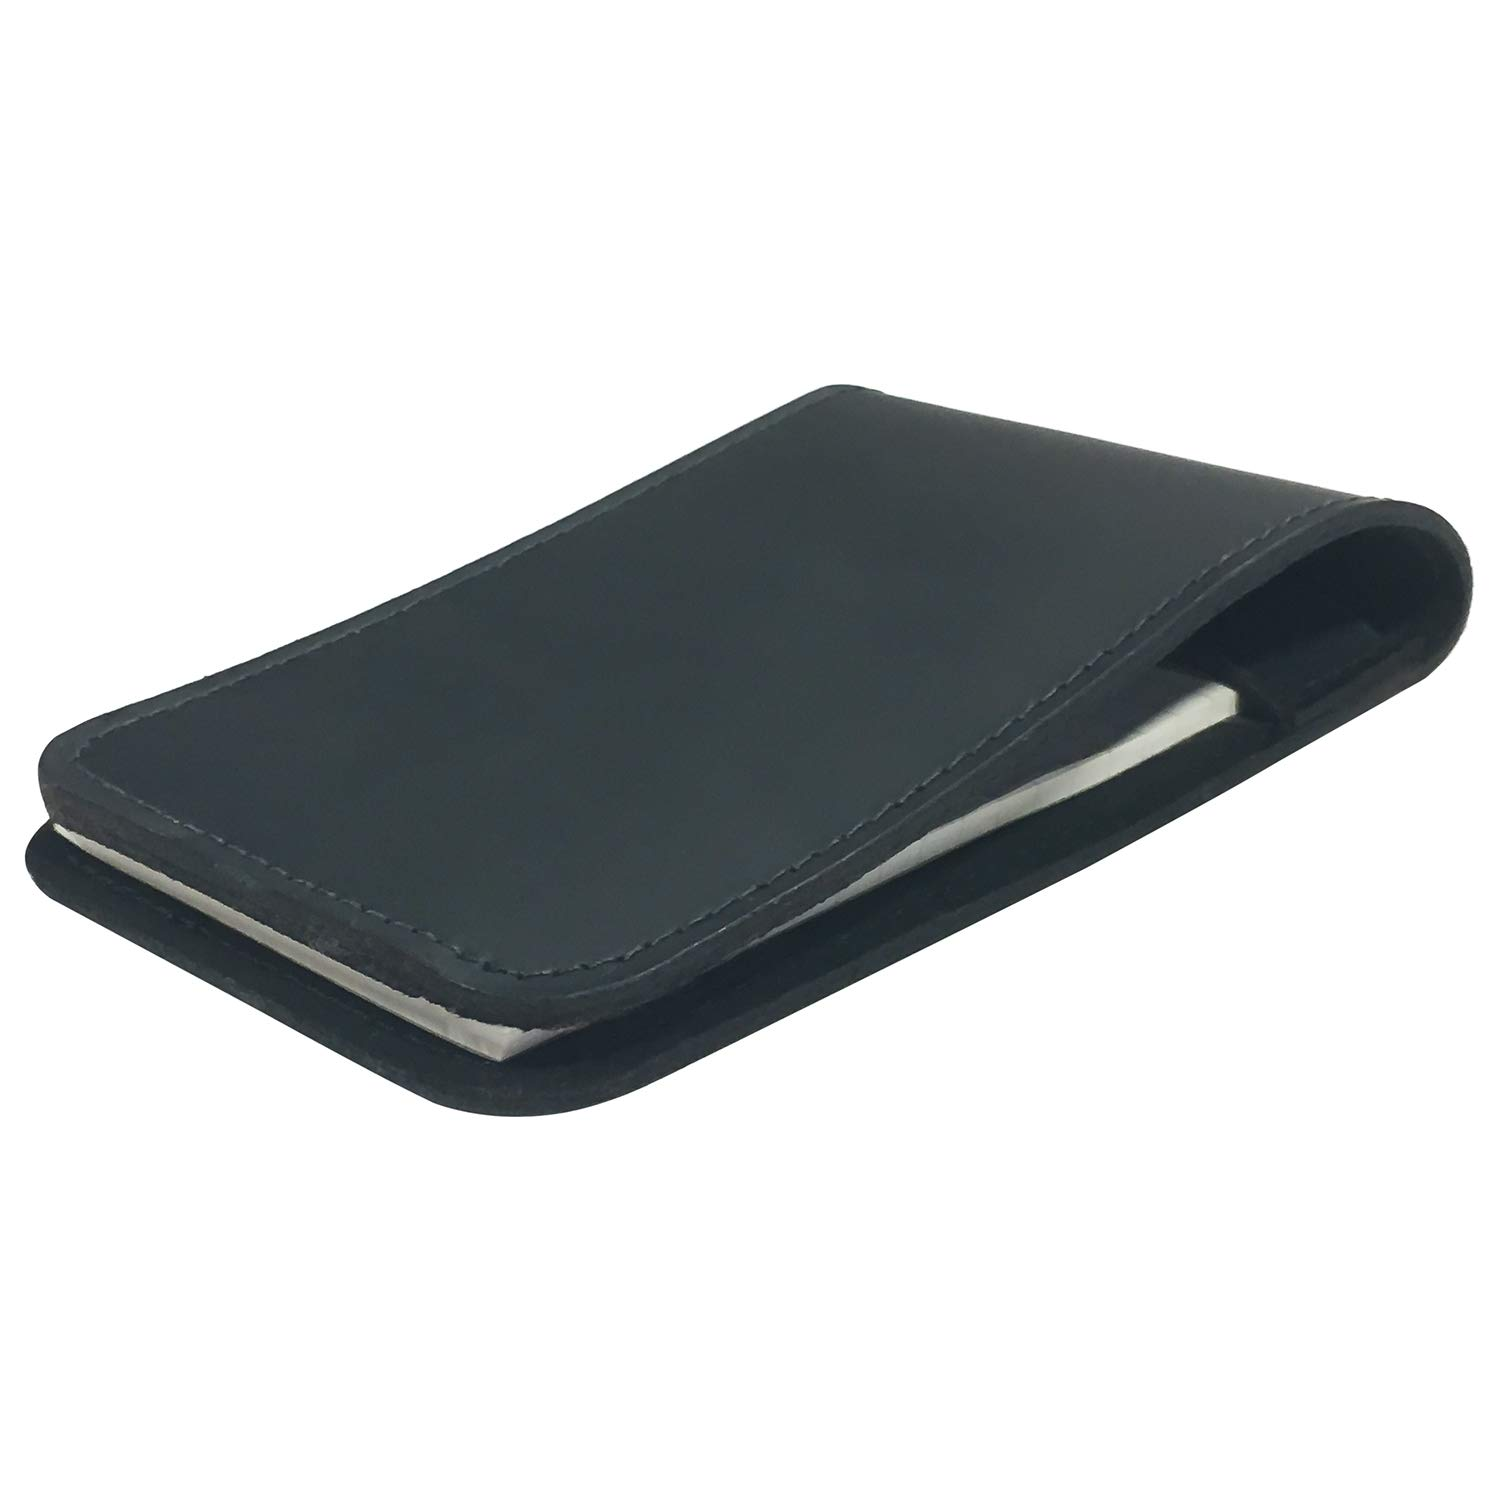 Memo Pad Cover & Holder, 3.5-Inch X 5.5-Inch Pocket Notebook, Includes One 3X5 Memo Pad by Boston Leather (Image #2)